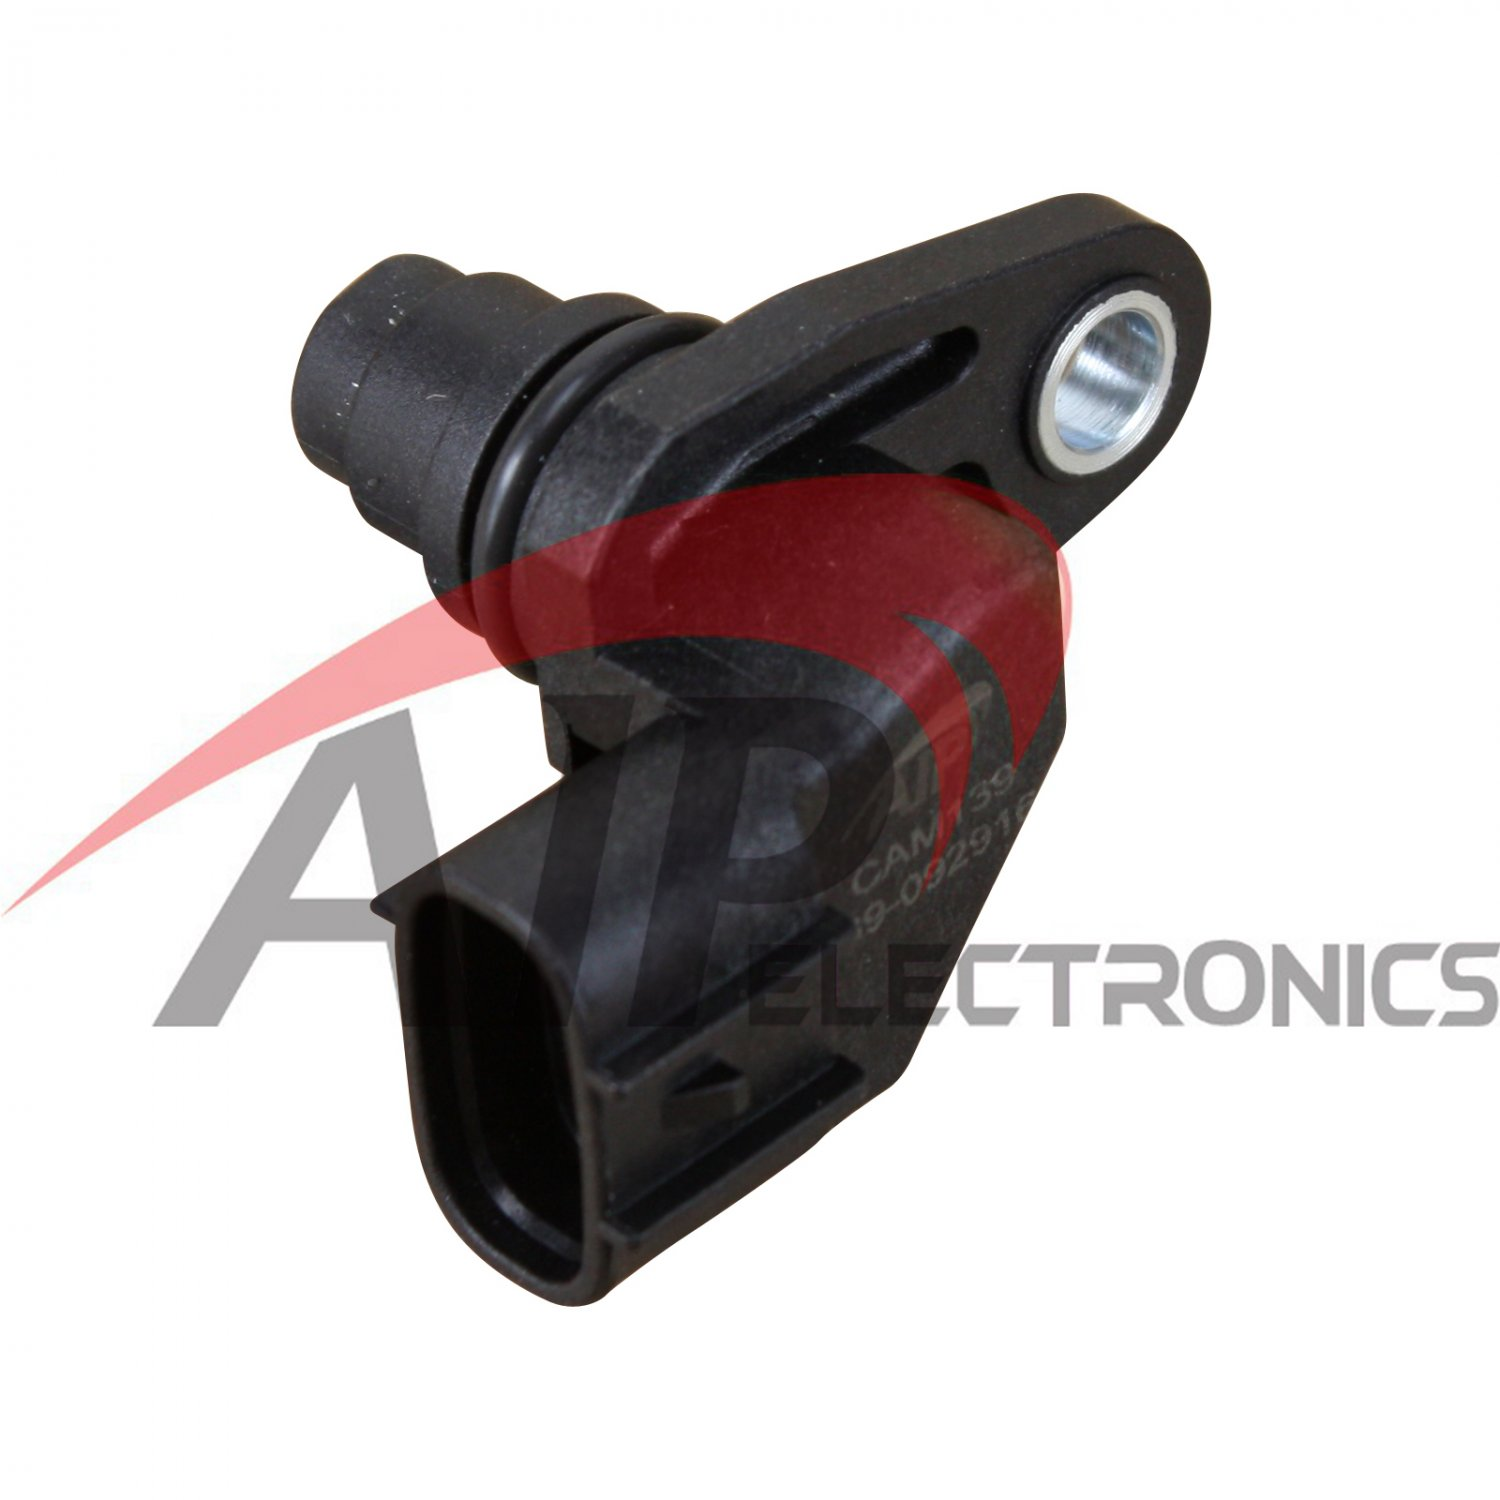 Brand New Camshaft Sensor For 2006-2012 Kia Optima Hyundia Mazda 3935025000 PC719 Oem Fit CAM139